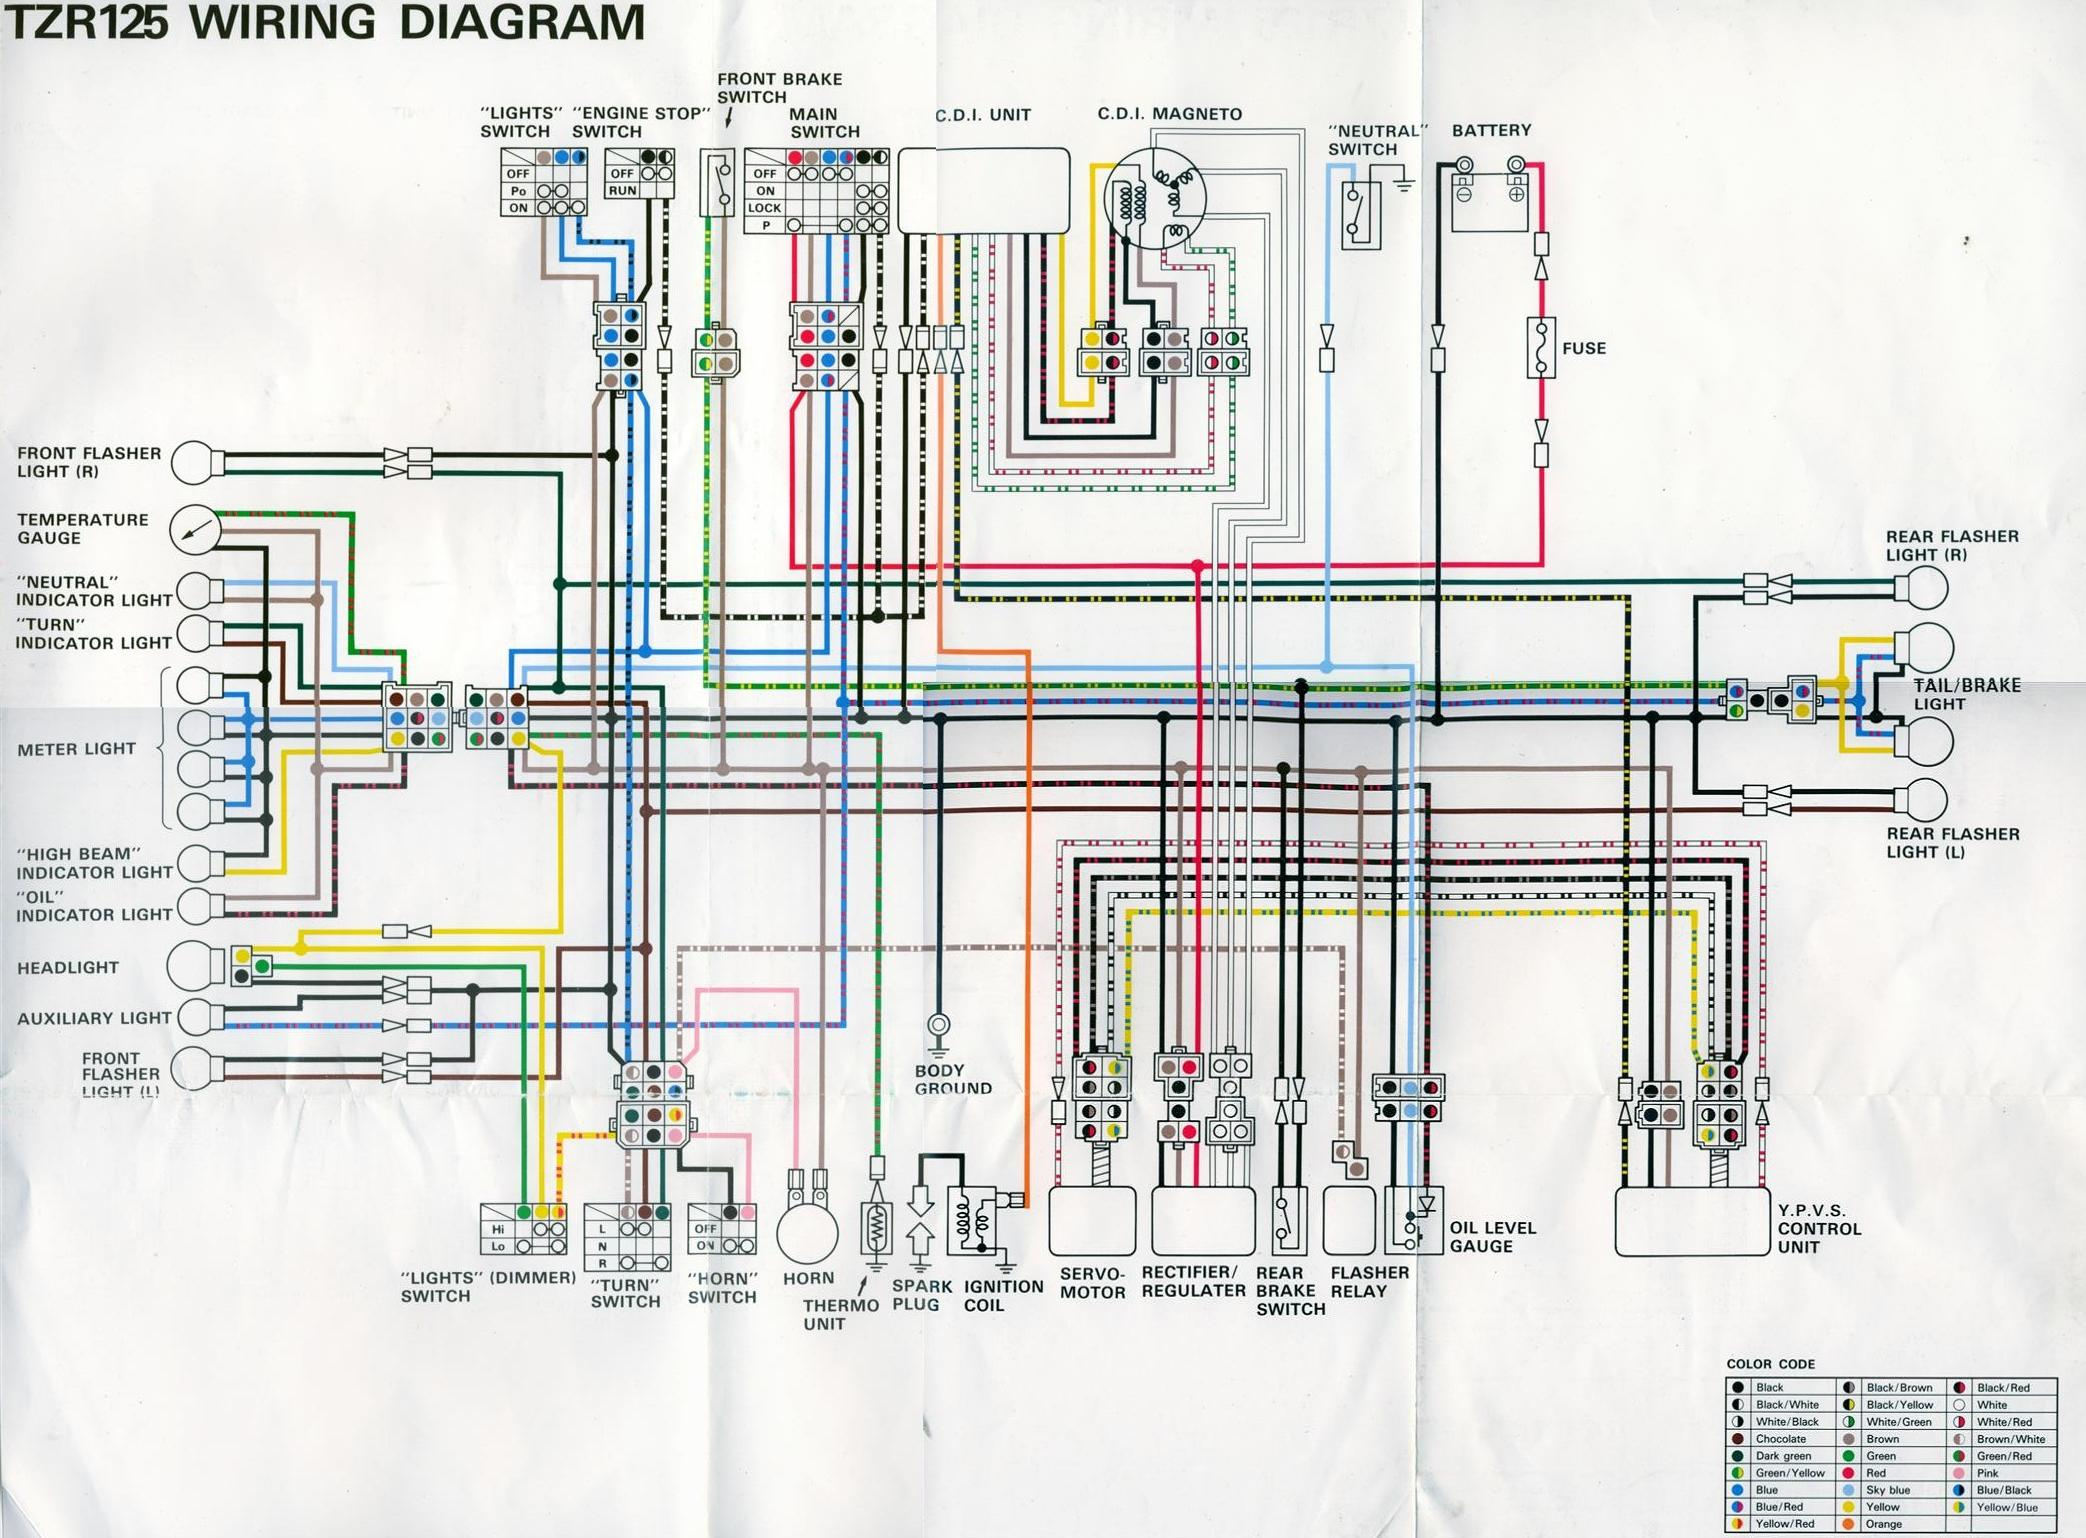 TZR125 Wiring Diagram 1 dj unreal's 2 stroke documentation storage site yamaha rd 350 wiring diagram at nearapp.co